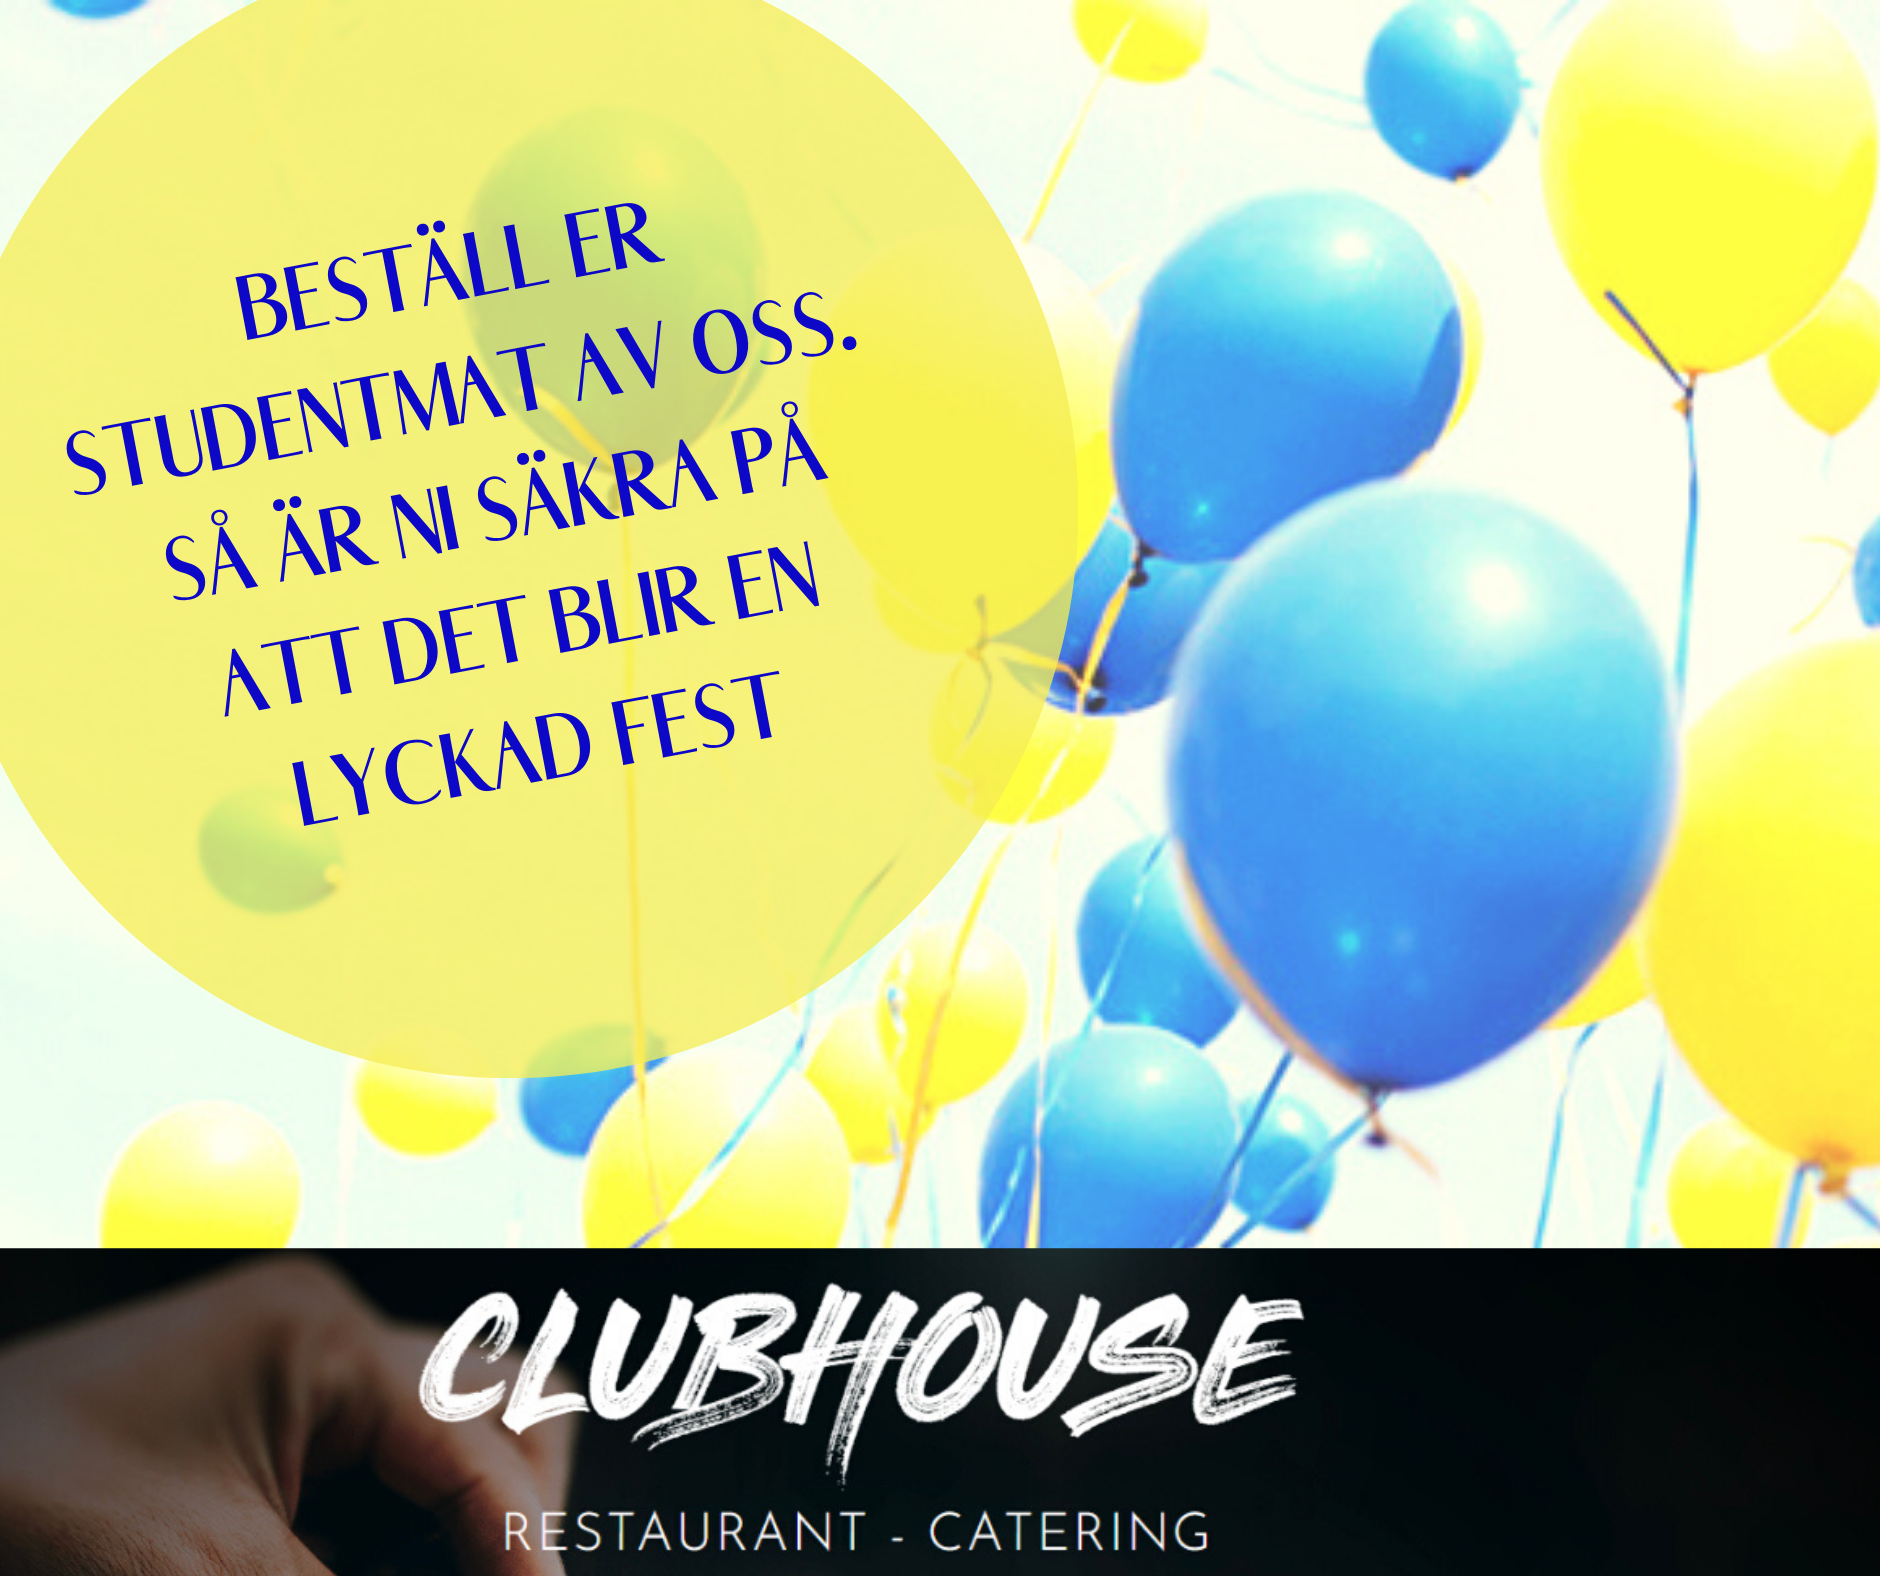 Studentfest - mat - catering-clubhouse-kristianstad